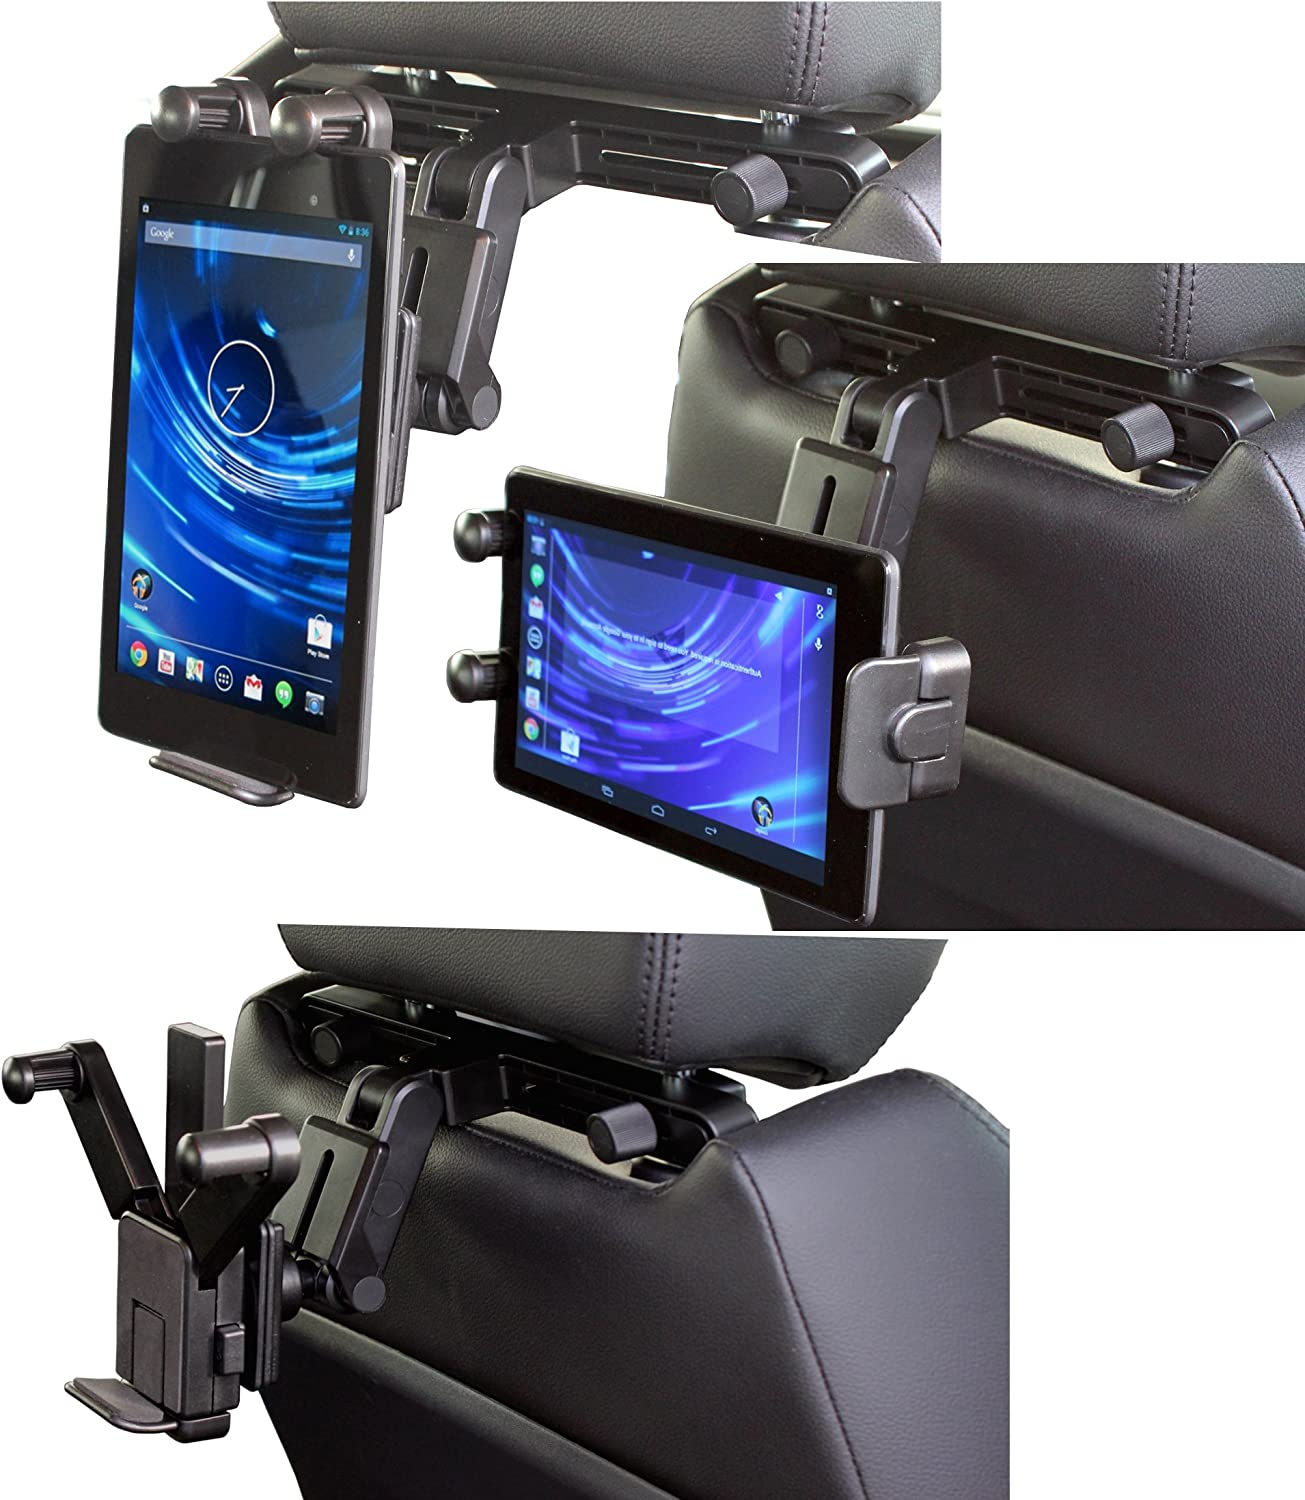 Navitech in-Car Easy Fit Back of Seat Head Rest Mount Compatible with The Tablets and e-Readers Including Kids Tablets Such As: Acer Iconia W510, W700, A200, A700, M500, A100, A500, A1 Liquid